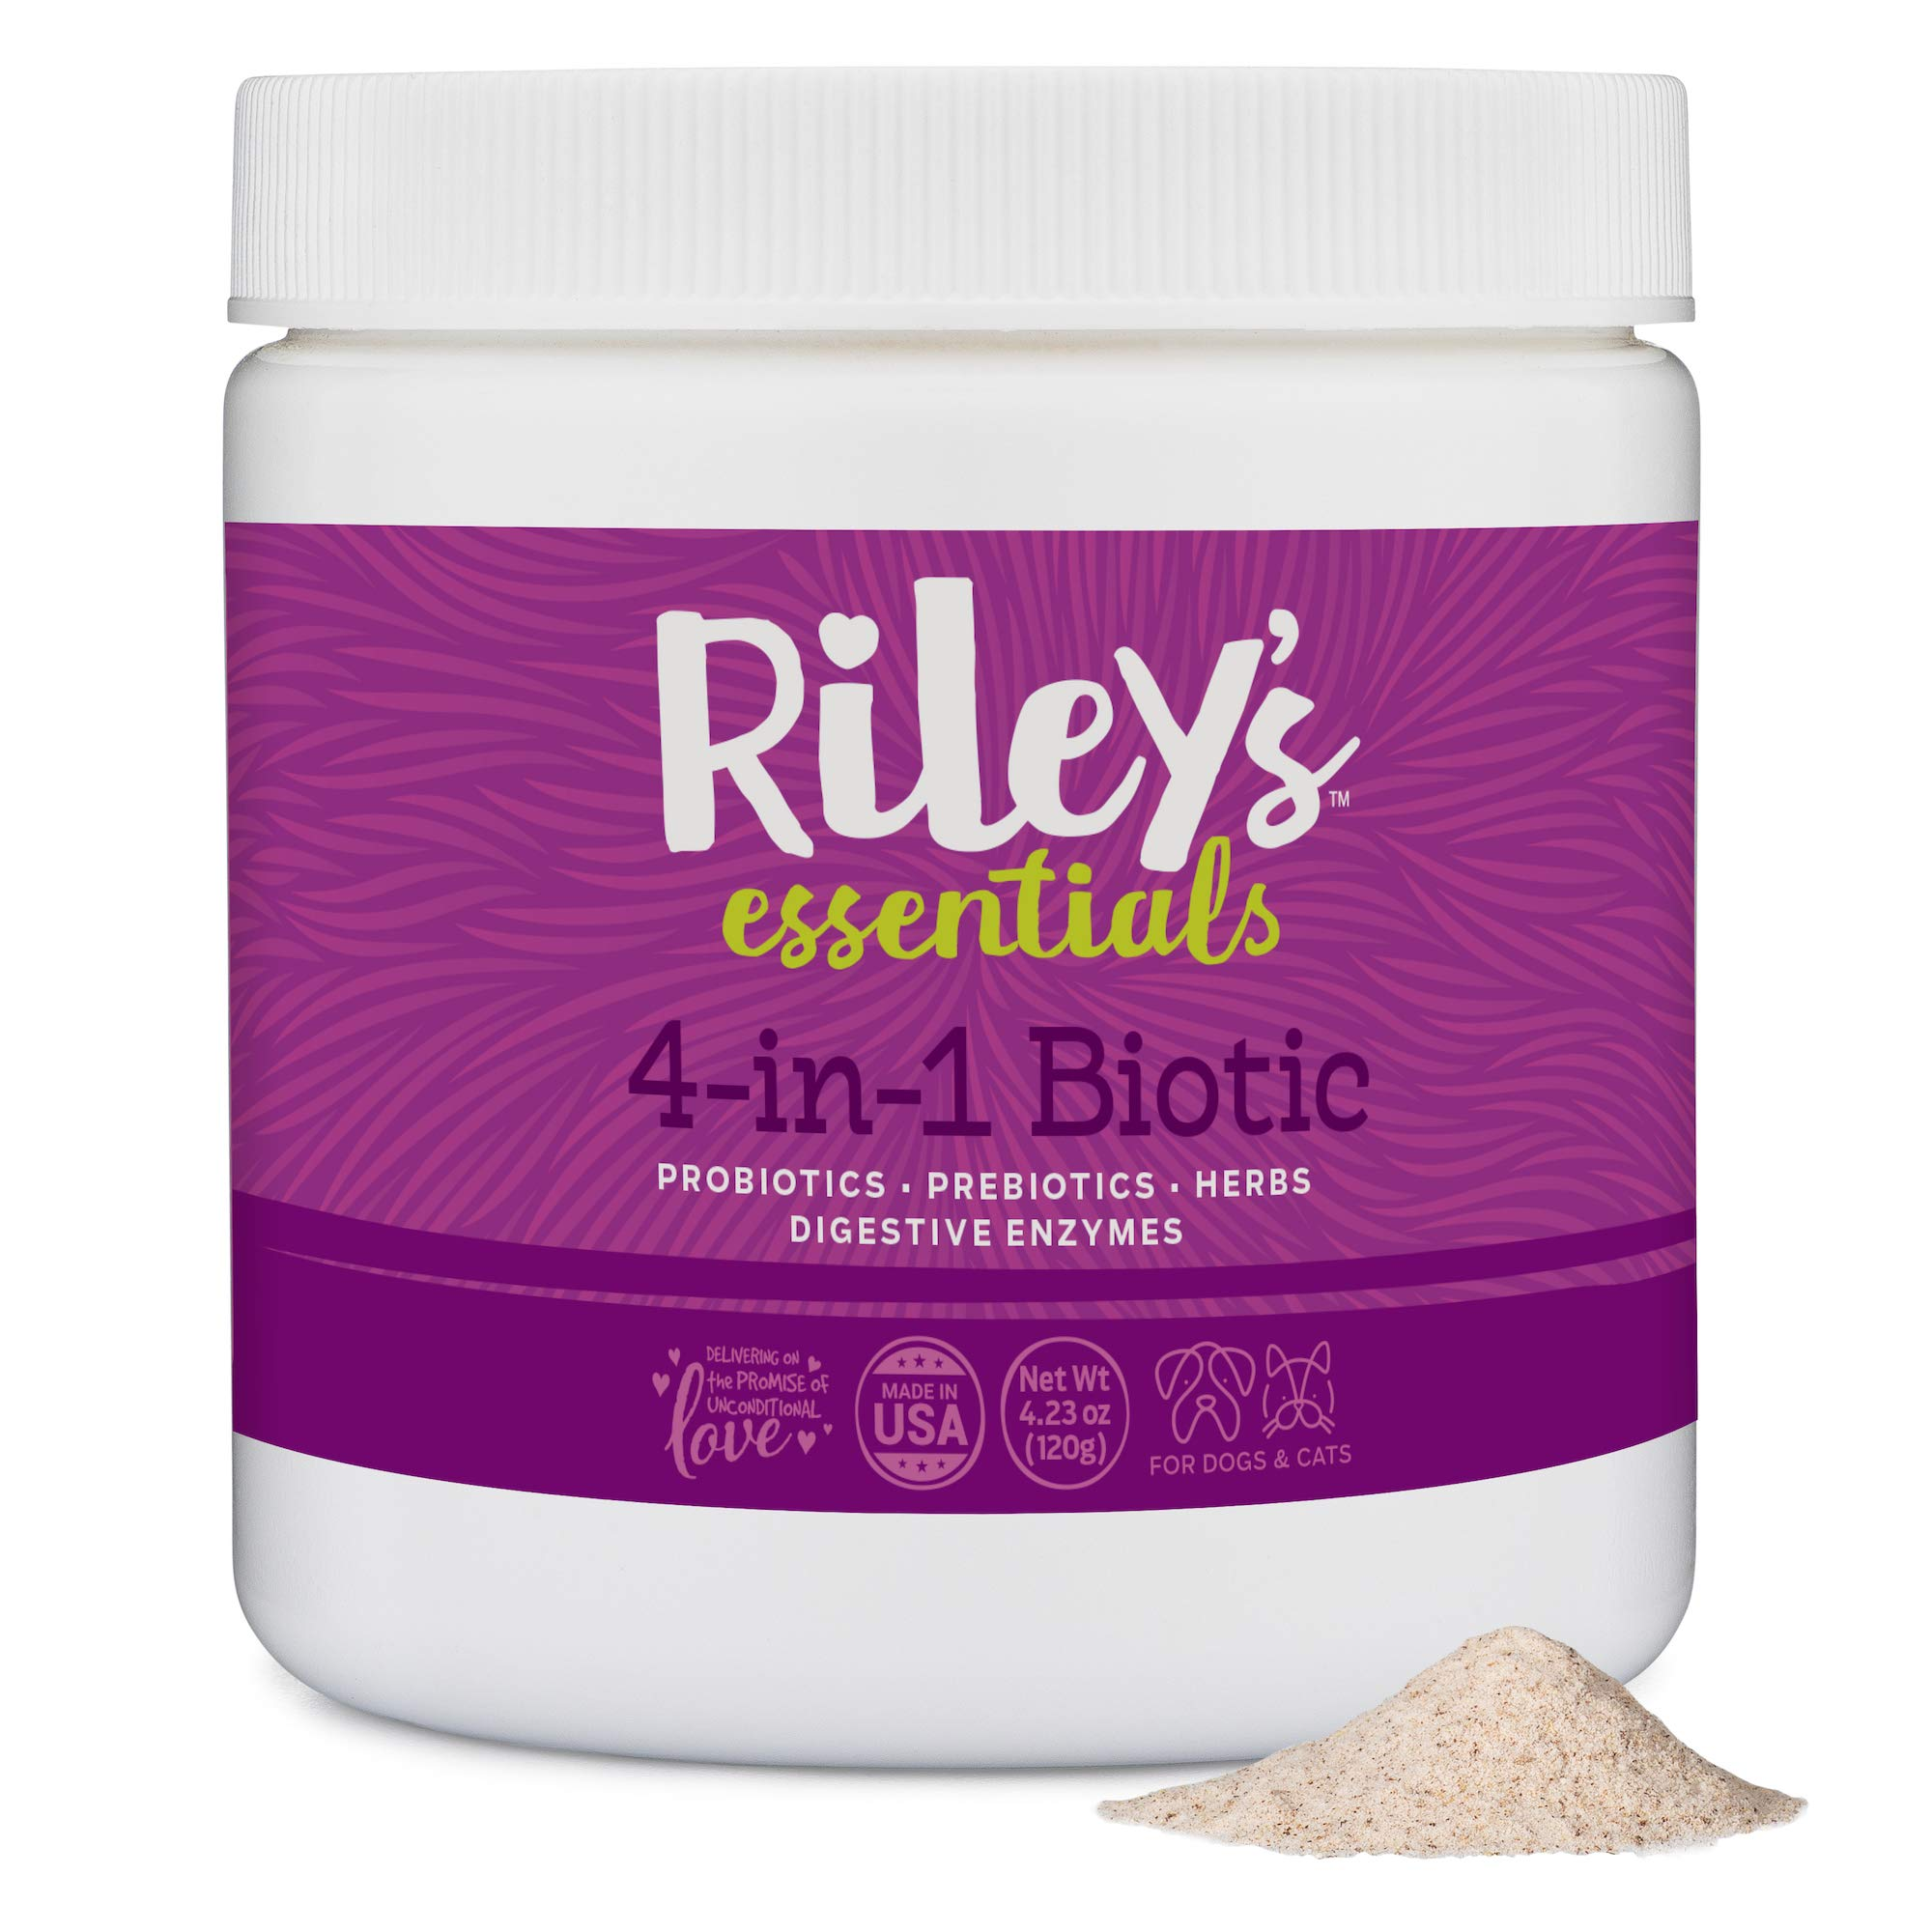 Riley's Probiotics for Dogs - 4-in-1 Biotic for Dogs & Cats - Probiotics, Digestive Enzymes, Prebiotics, and Herbs - Most Complete Canine Probiotics Supplements for Dogs - 4.23oz Powder by Riley's